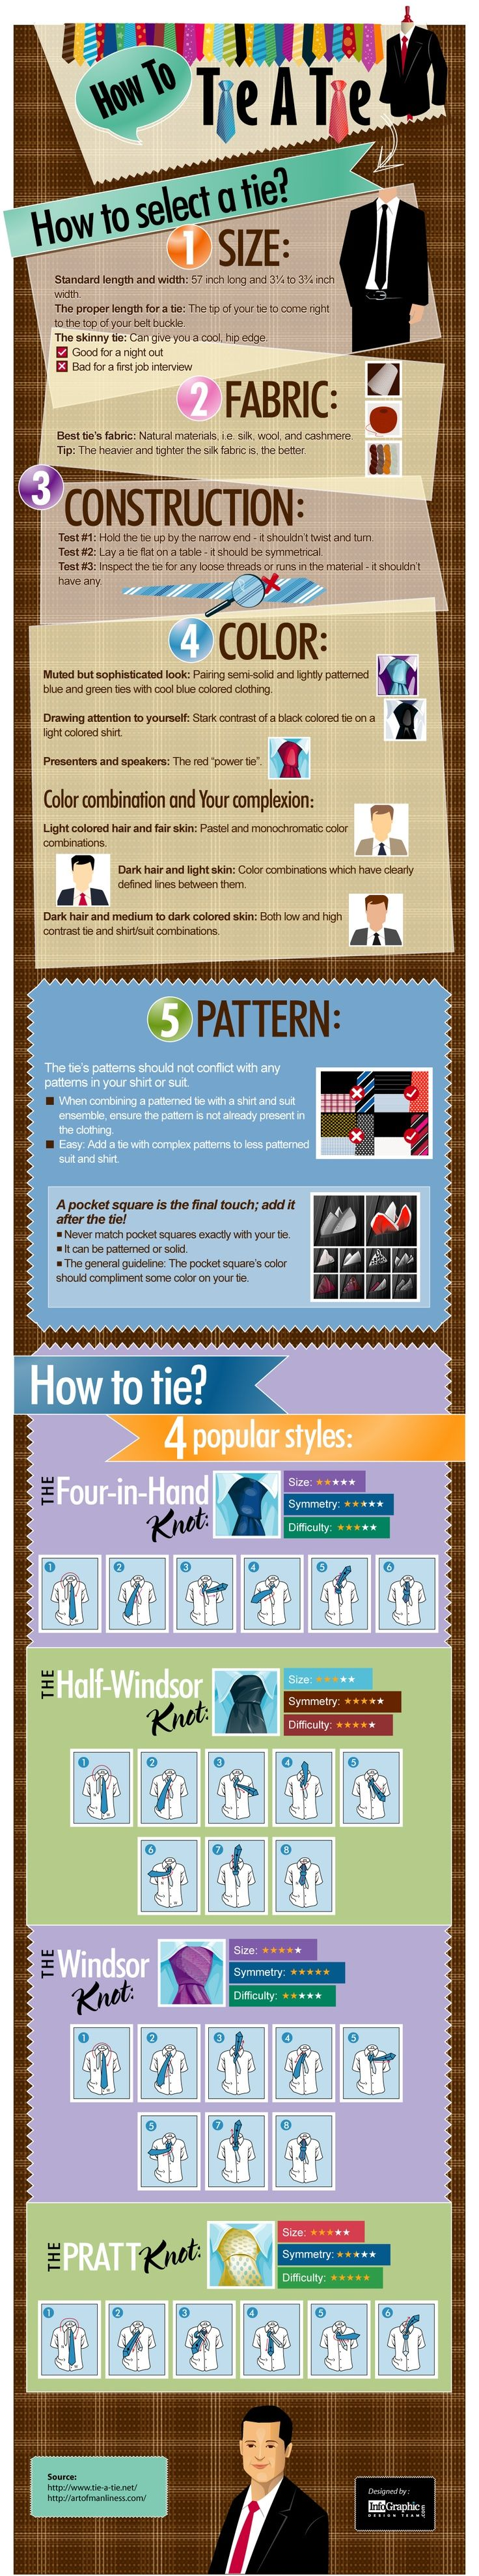 Great Necktie Information.  How to choose a tie.  How choose a fabric.  How to choose a size.  How to choose a color. How to choose the right pattern.  How to tie a tie.  Half windsor knot, windsor knot, pratt knot, four-in-hand knot.